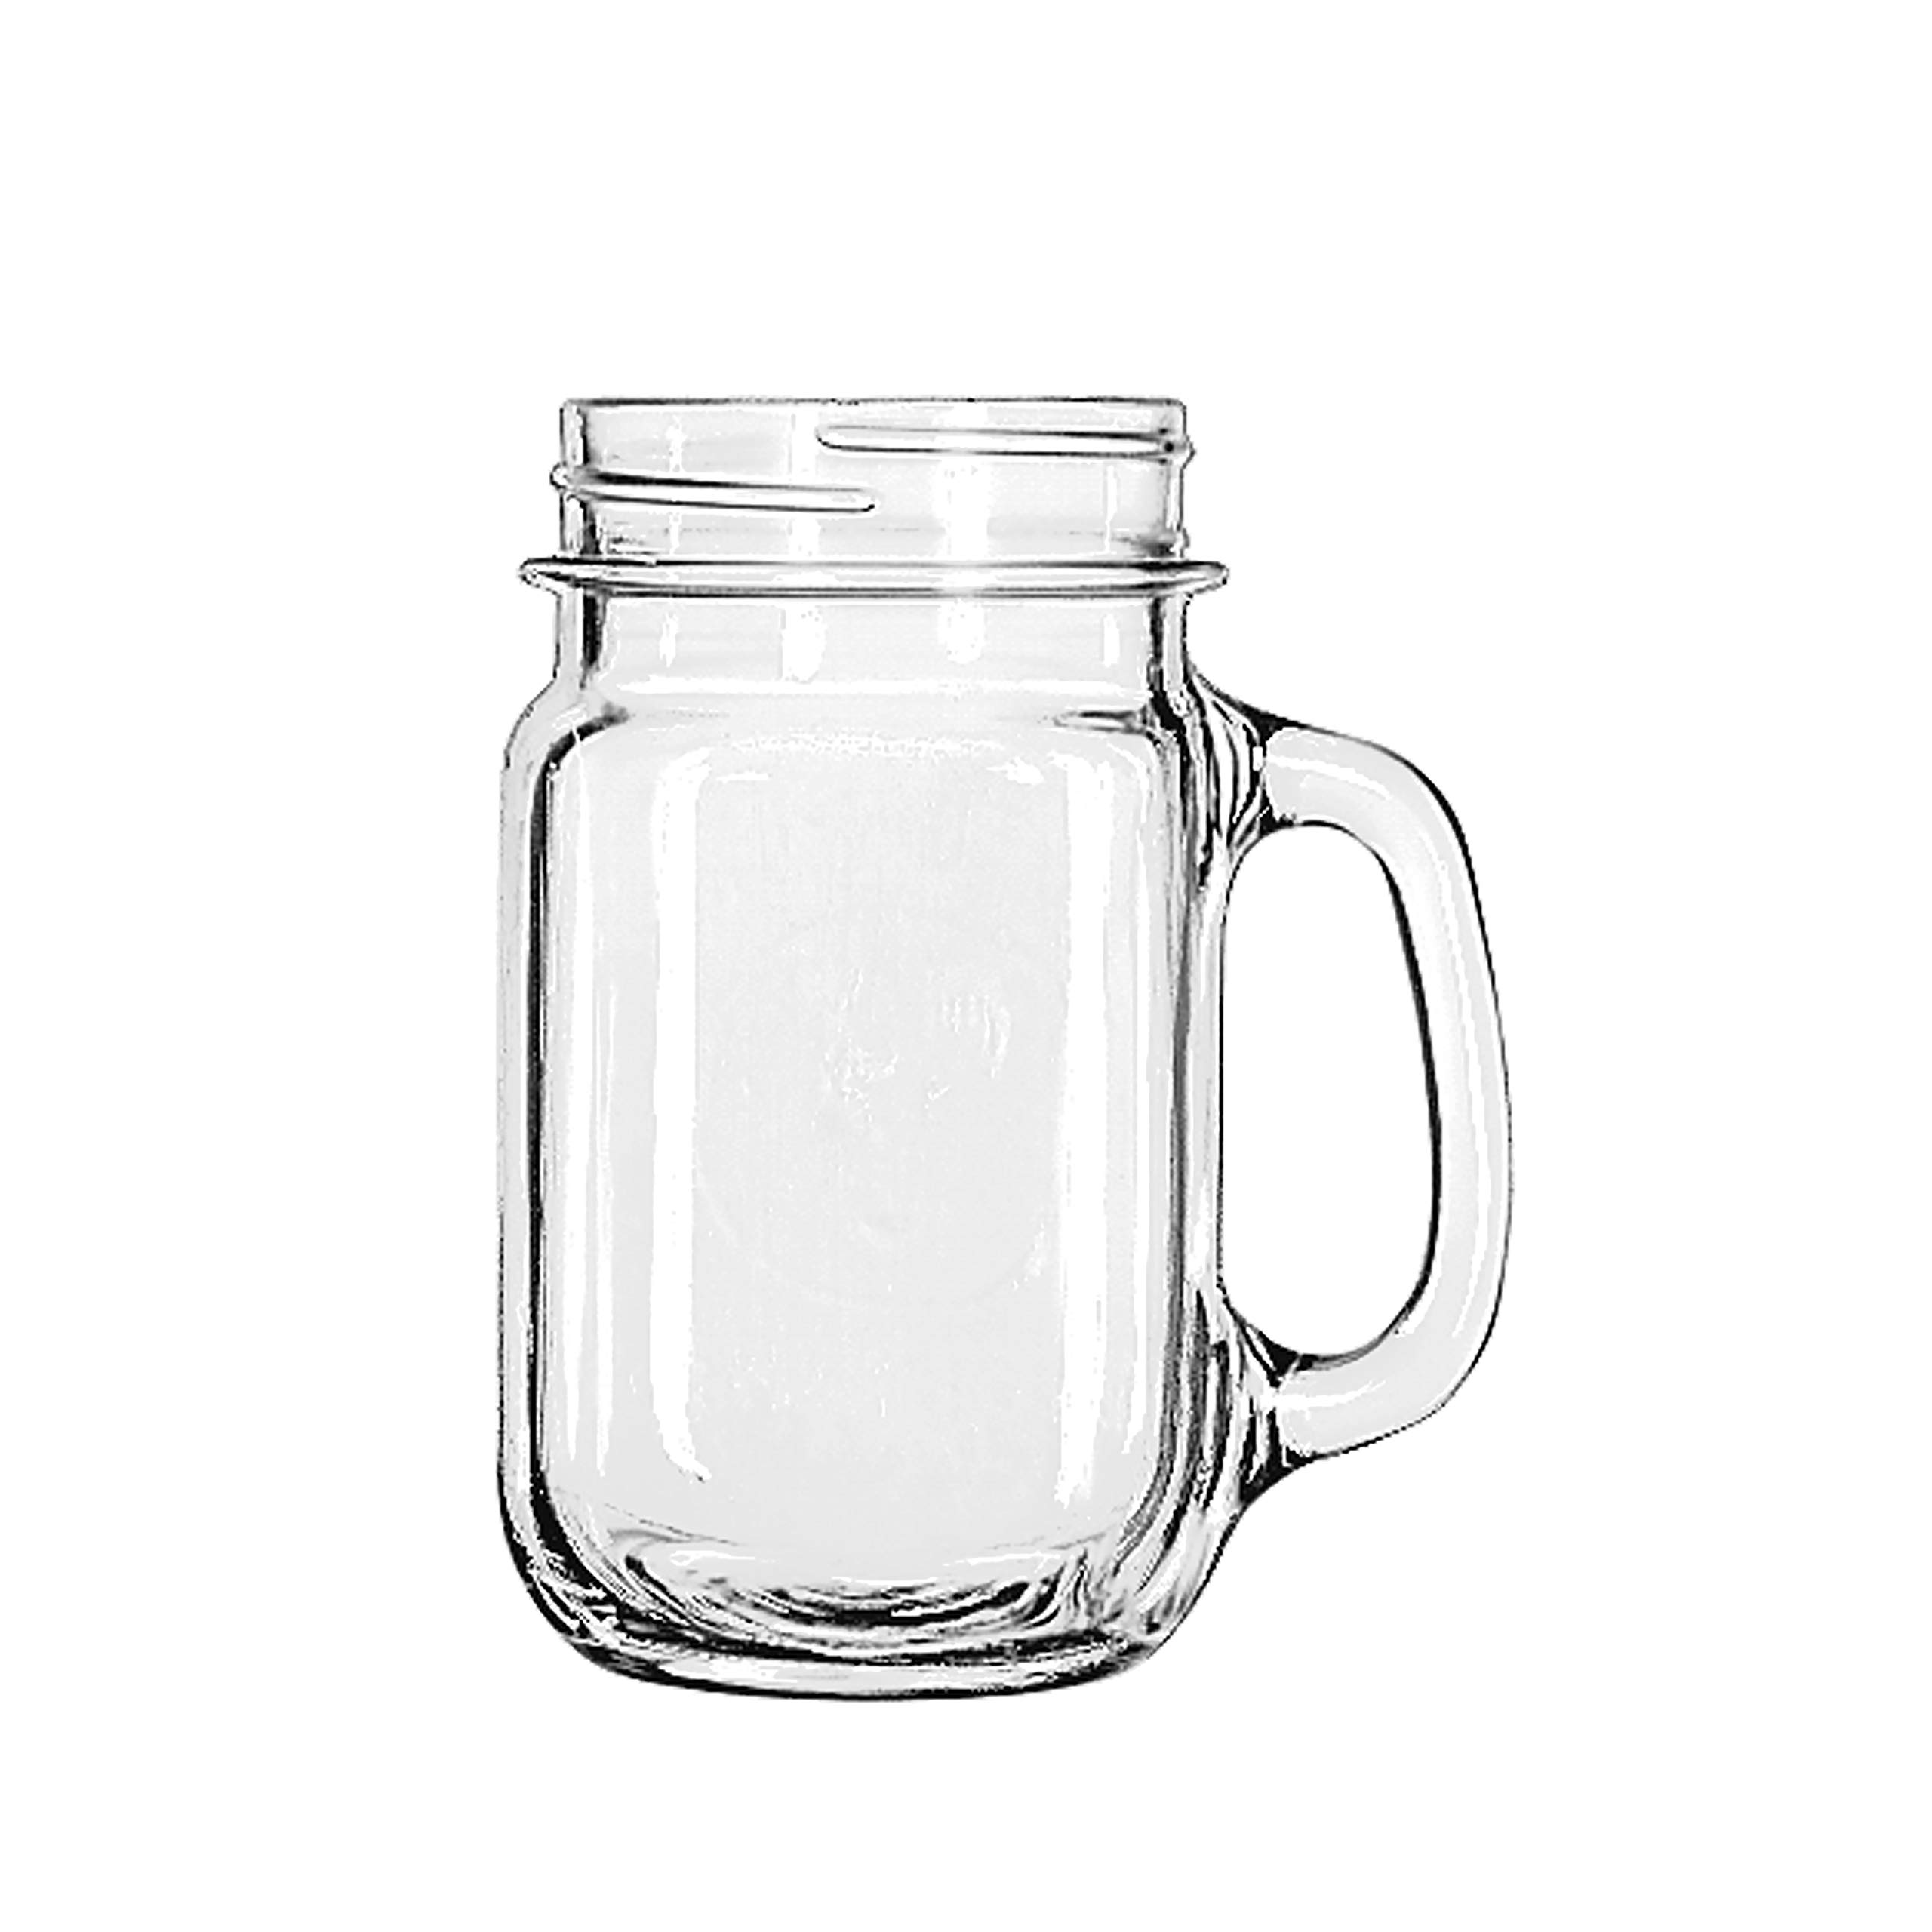 Libbey Drinking Mason Jar with Handle, 16 -Ounce, Set of 12